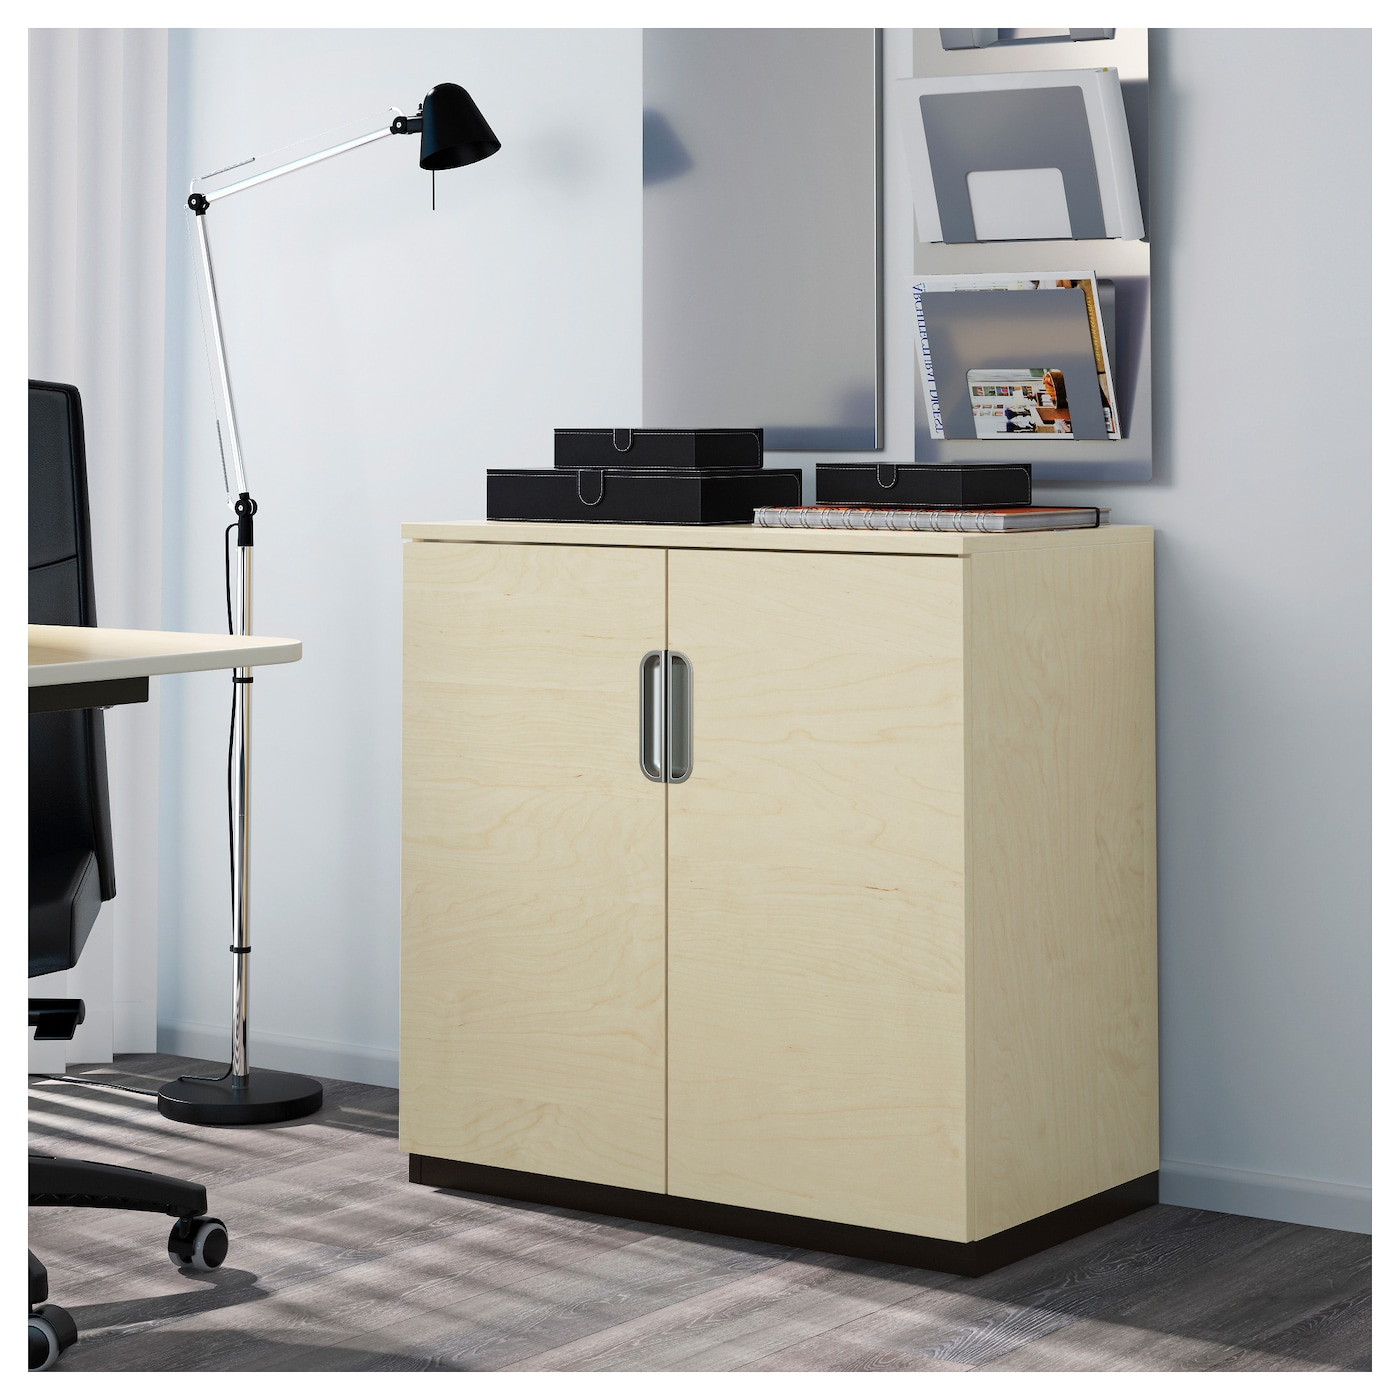 galant cabinet with doors birch veneer 80x80 cm ikea. Black Bedroom Furniture Sets. Home Design Ideas